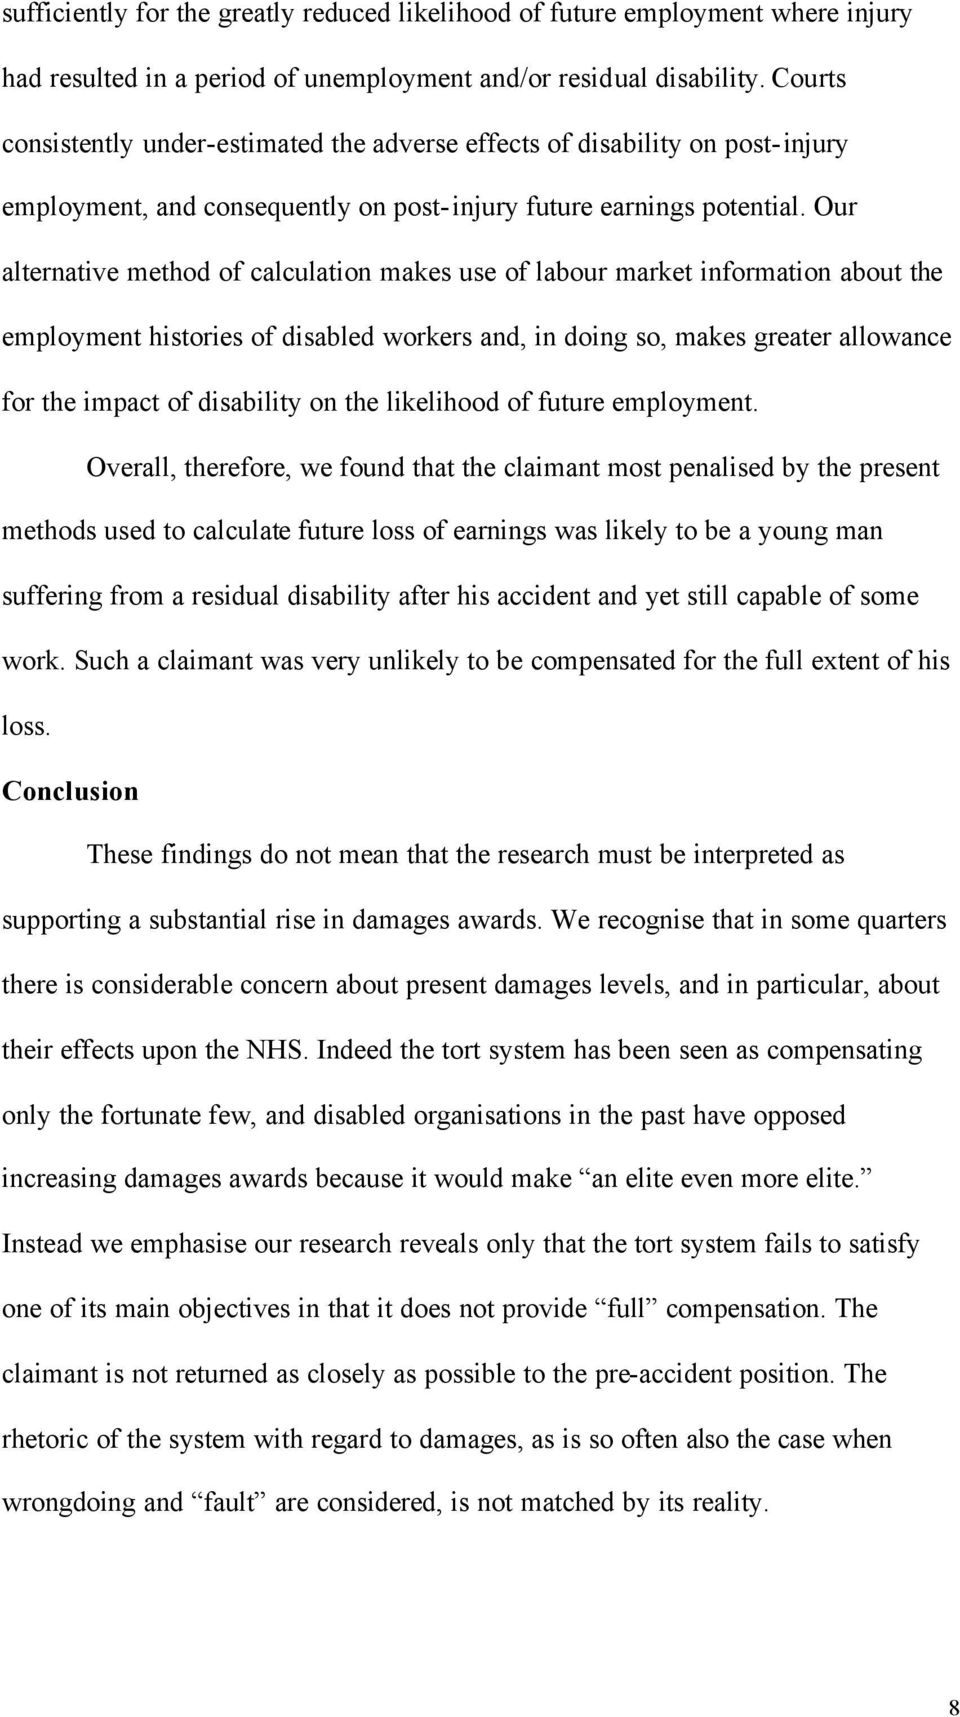 Our alternative method of calculation makes use of labour market information about the employment histories of disabled workers and, in doing so, makes greater allowance for the impact of disability